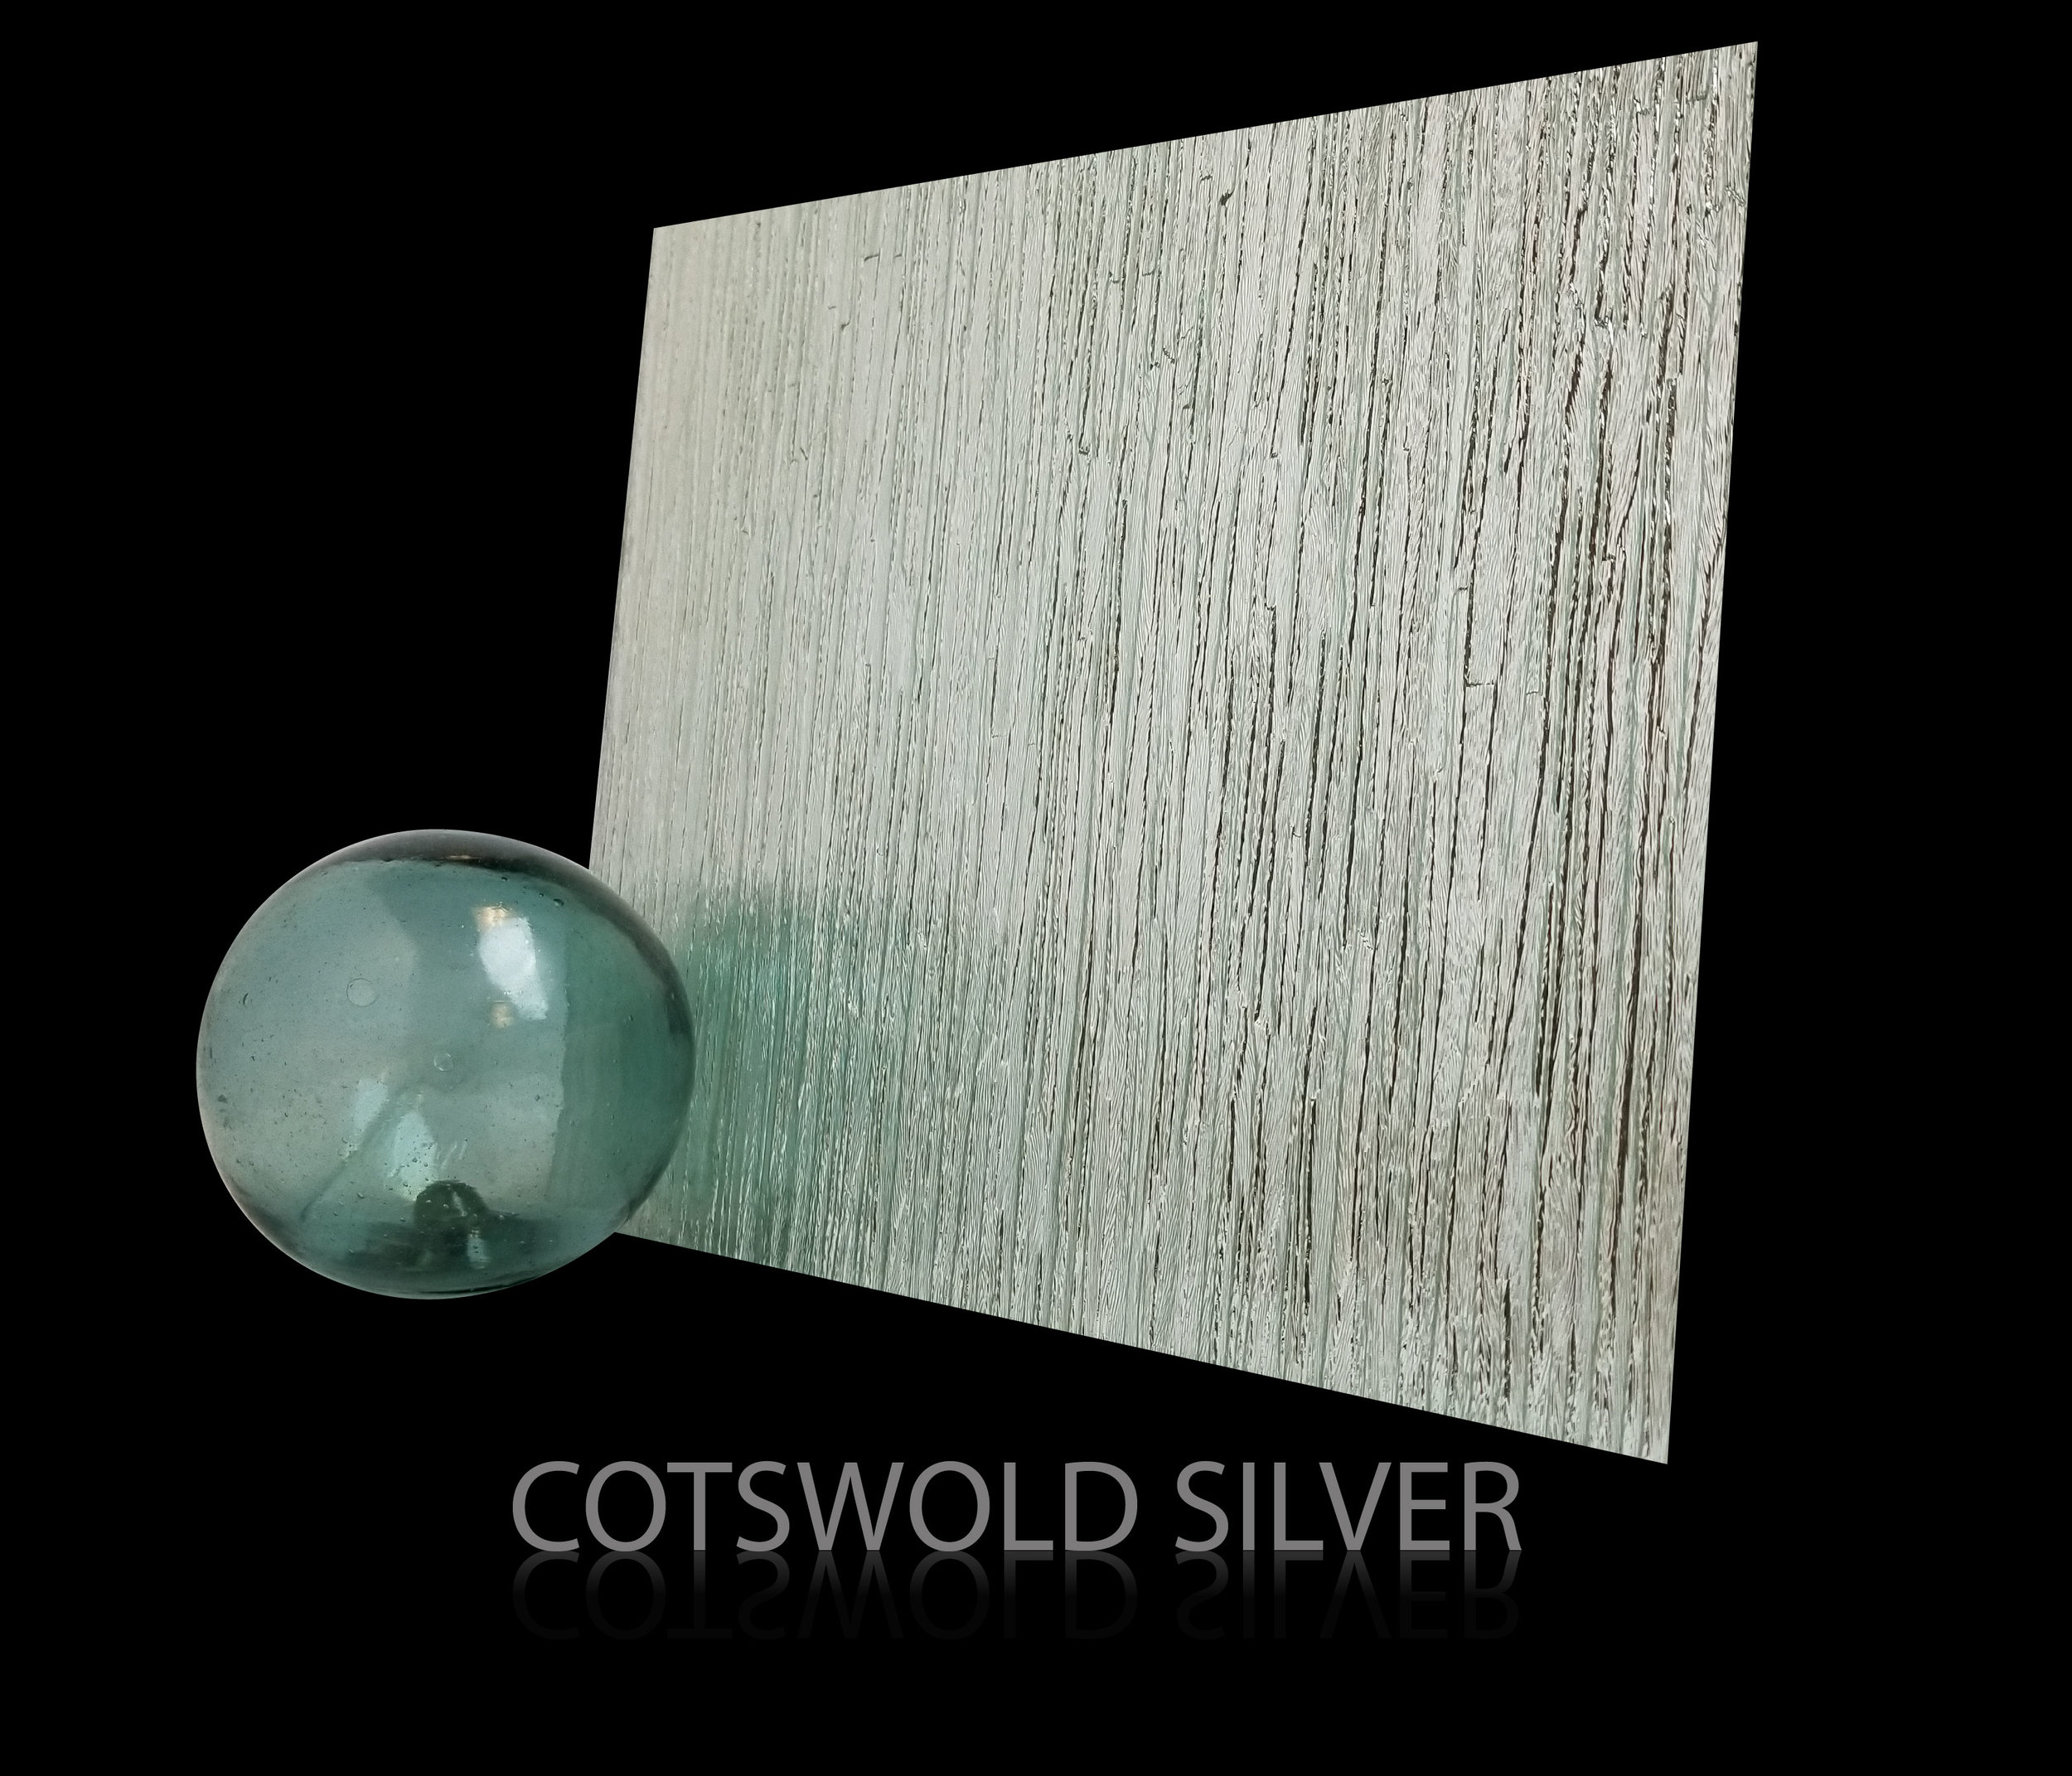 Cotswold Silver (vertical).jpg